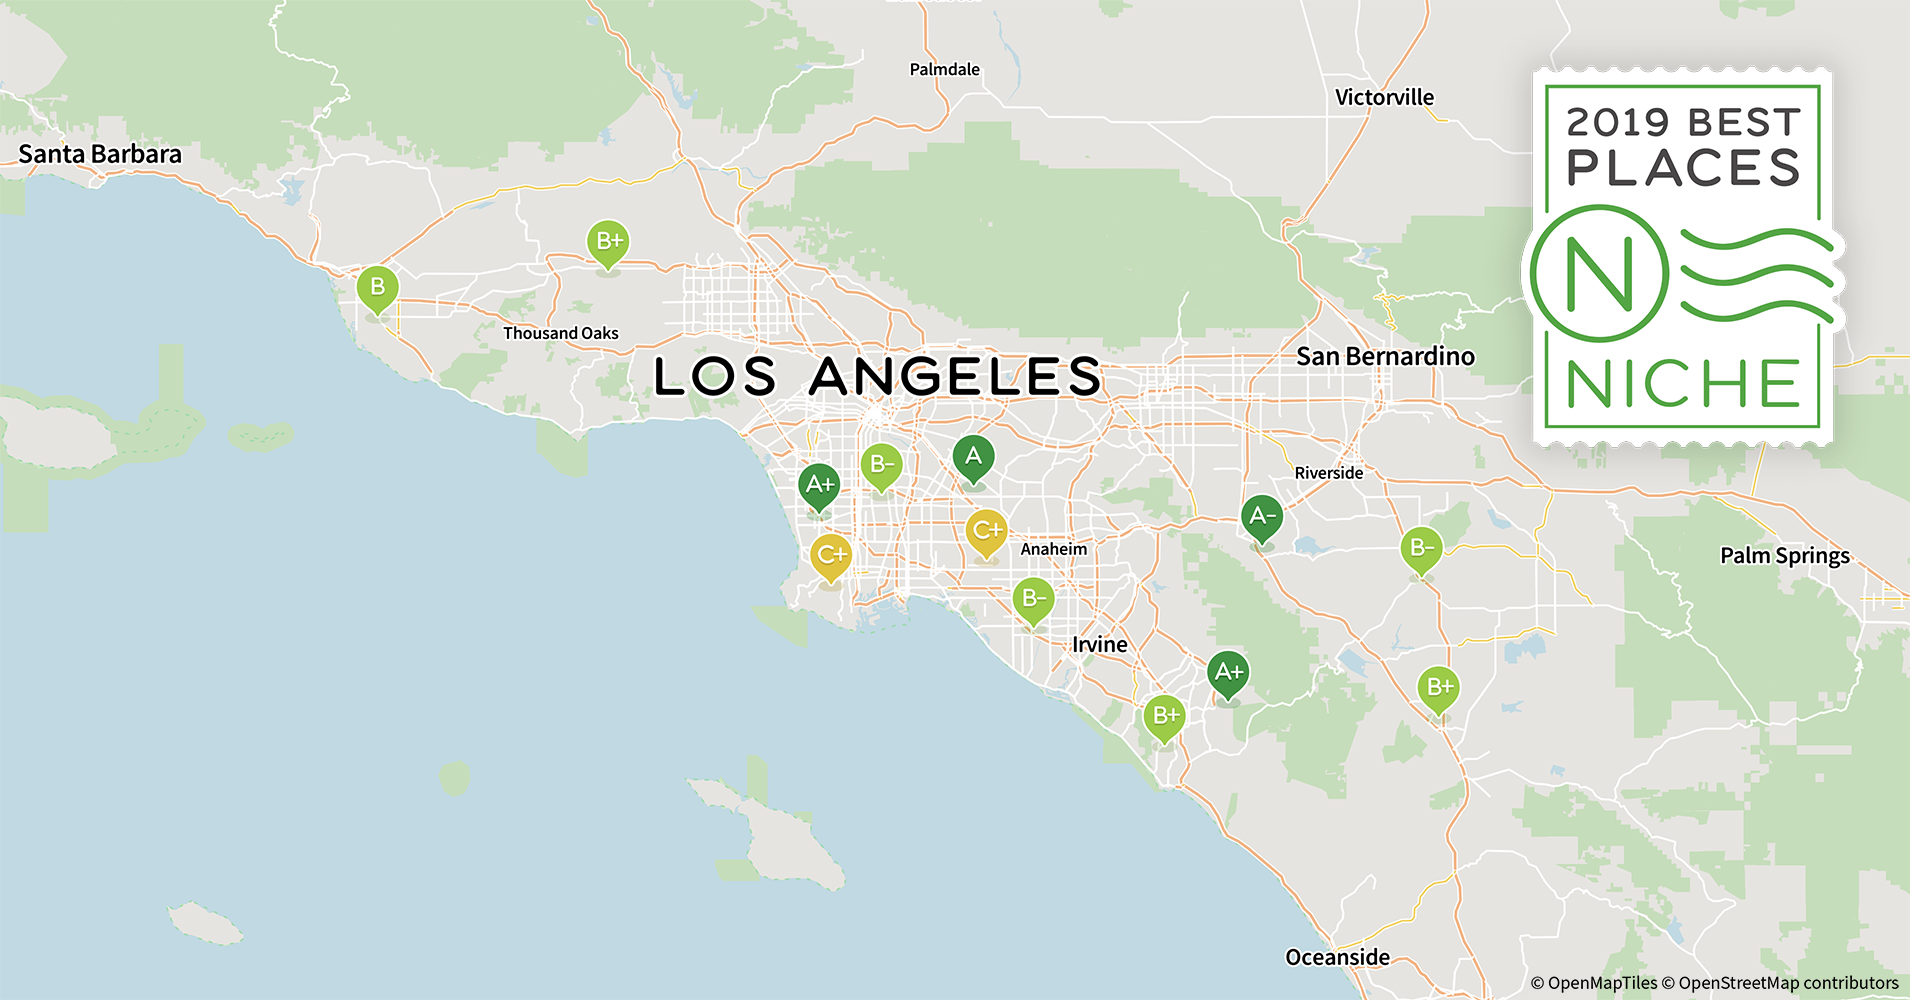 2019 best los angeles area suburbs to live - niche